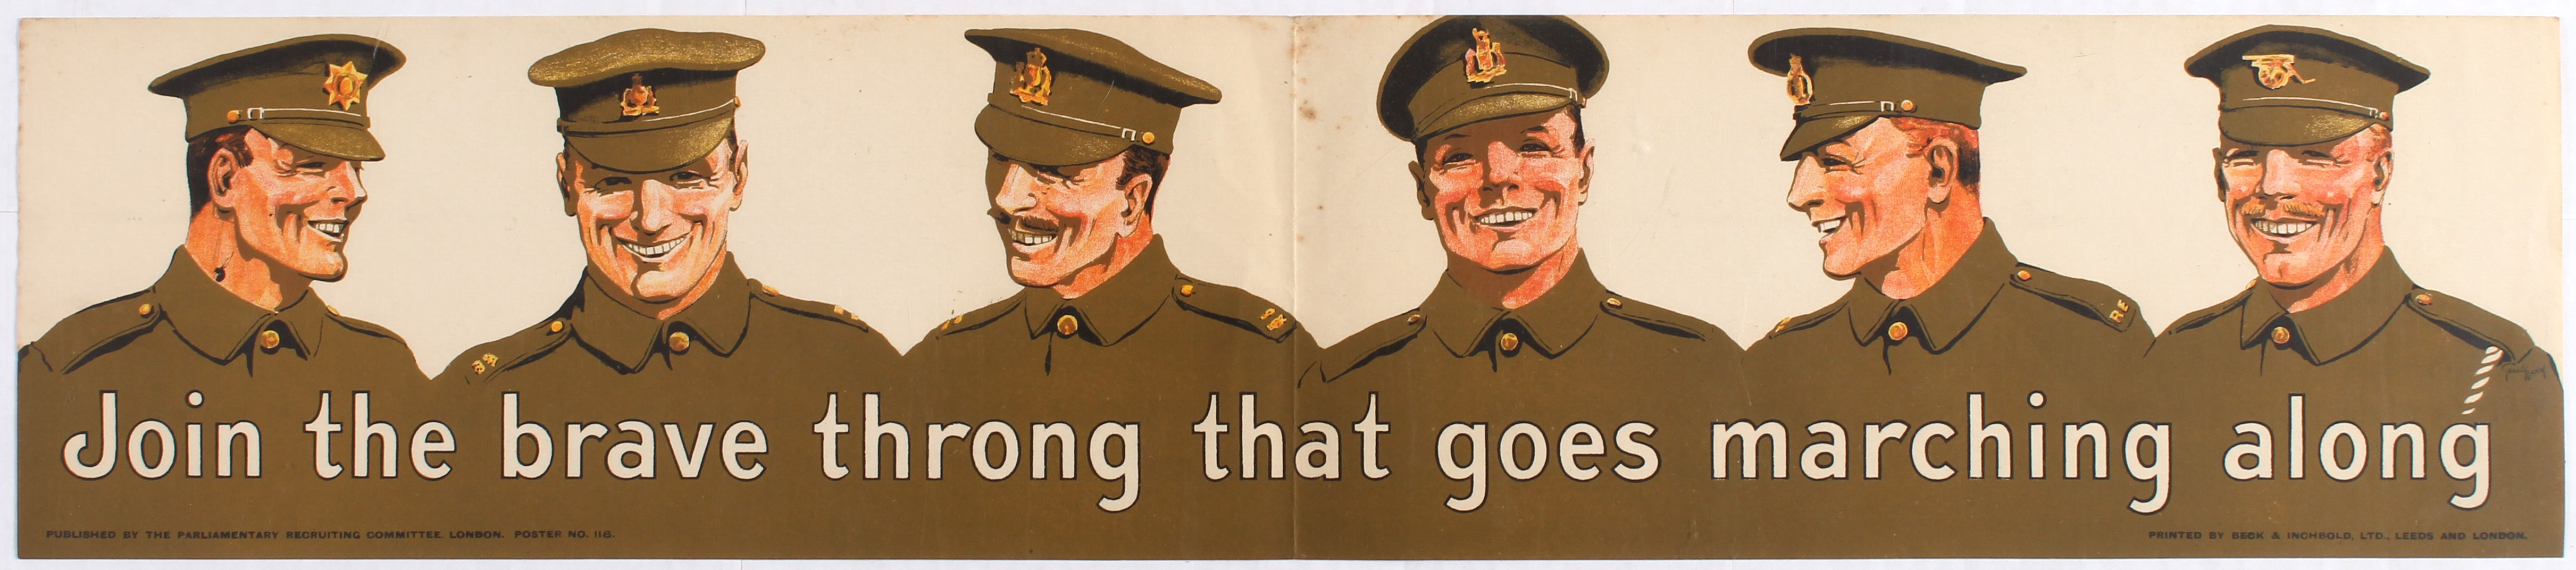 Lot 4106 - War Propaganda WWI poster Join the brave throng that goes marching along (small).